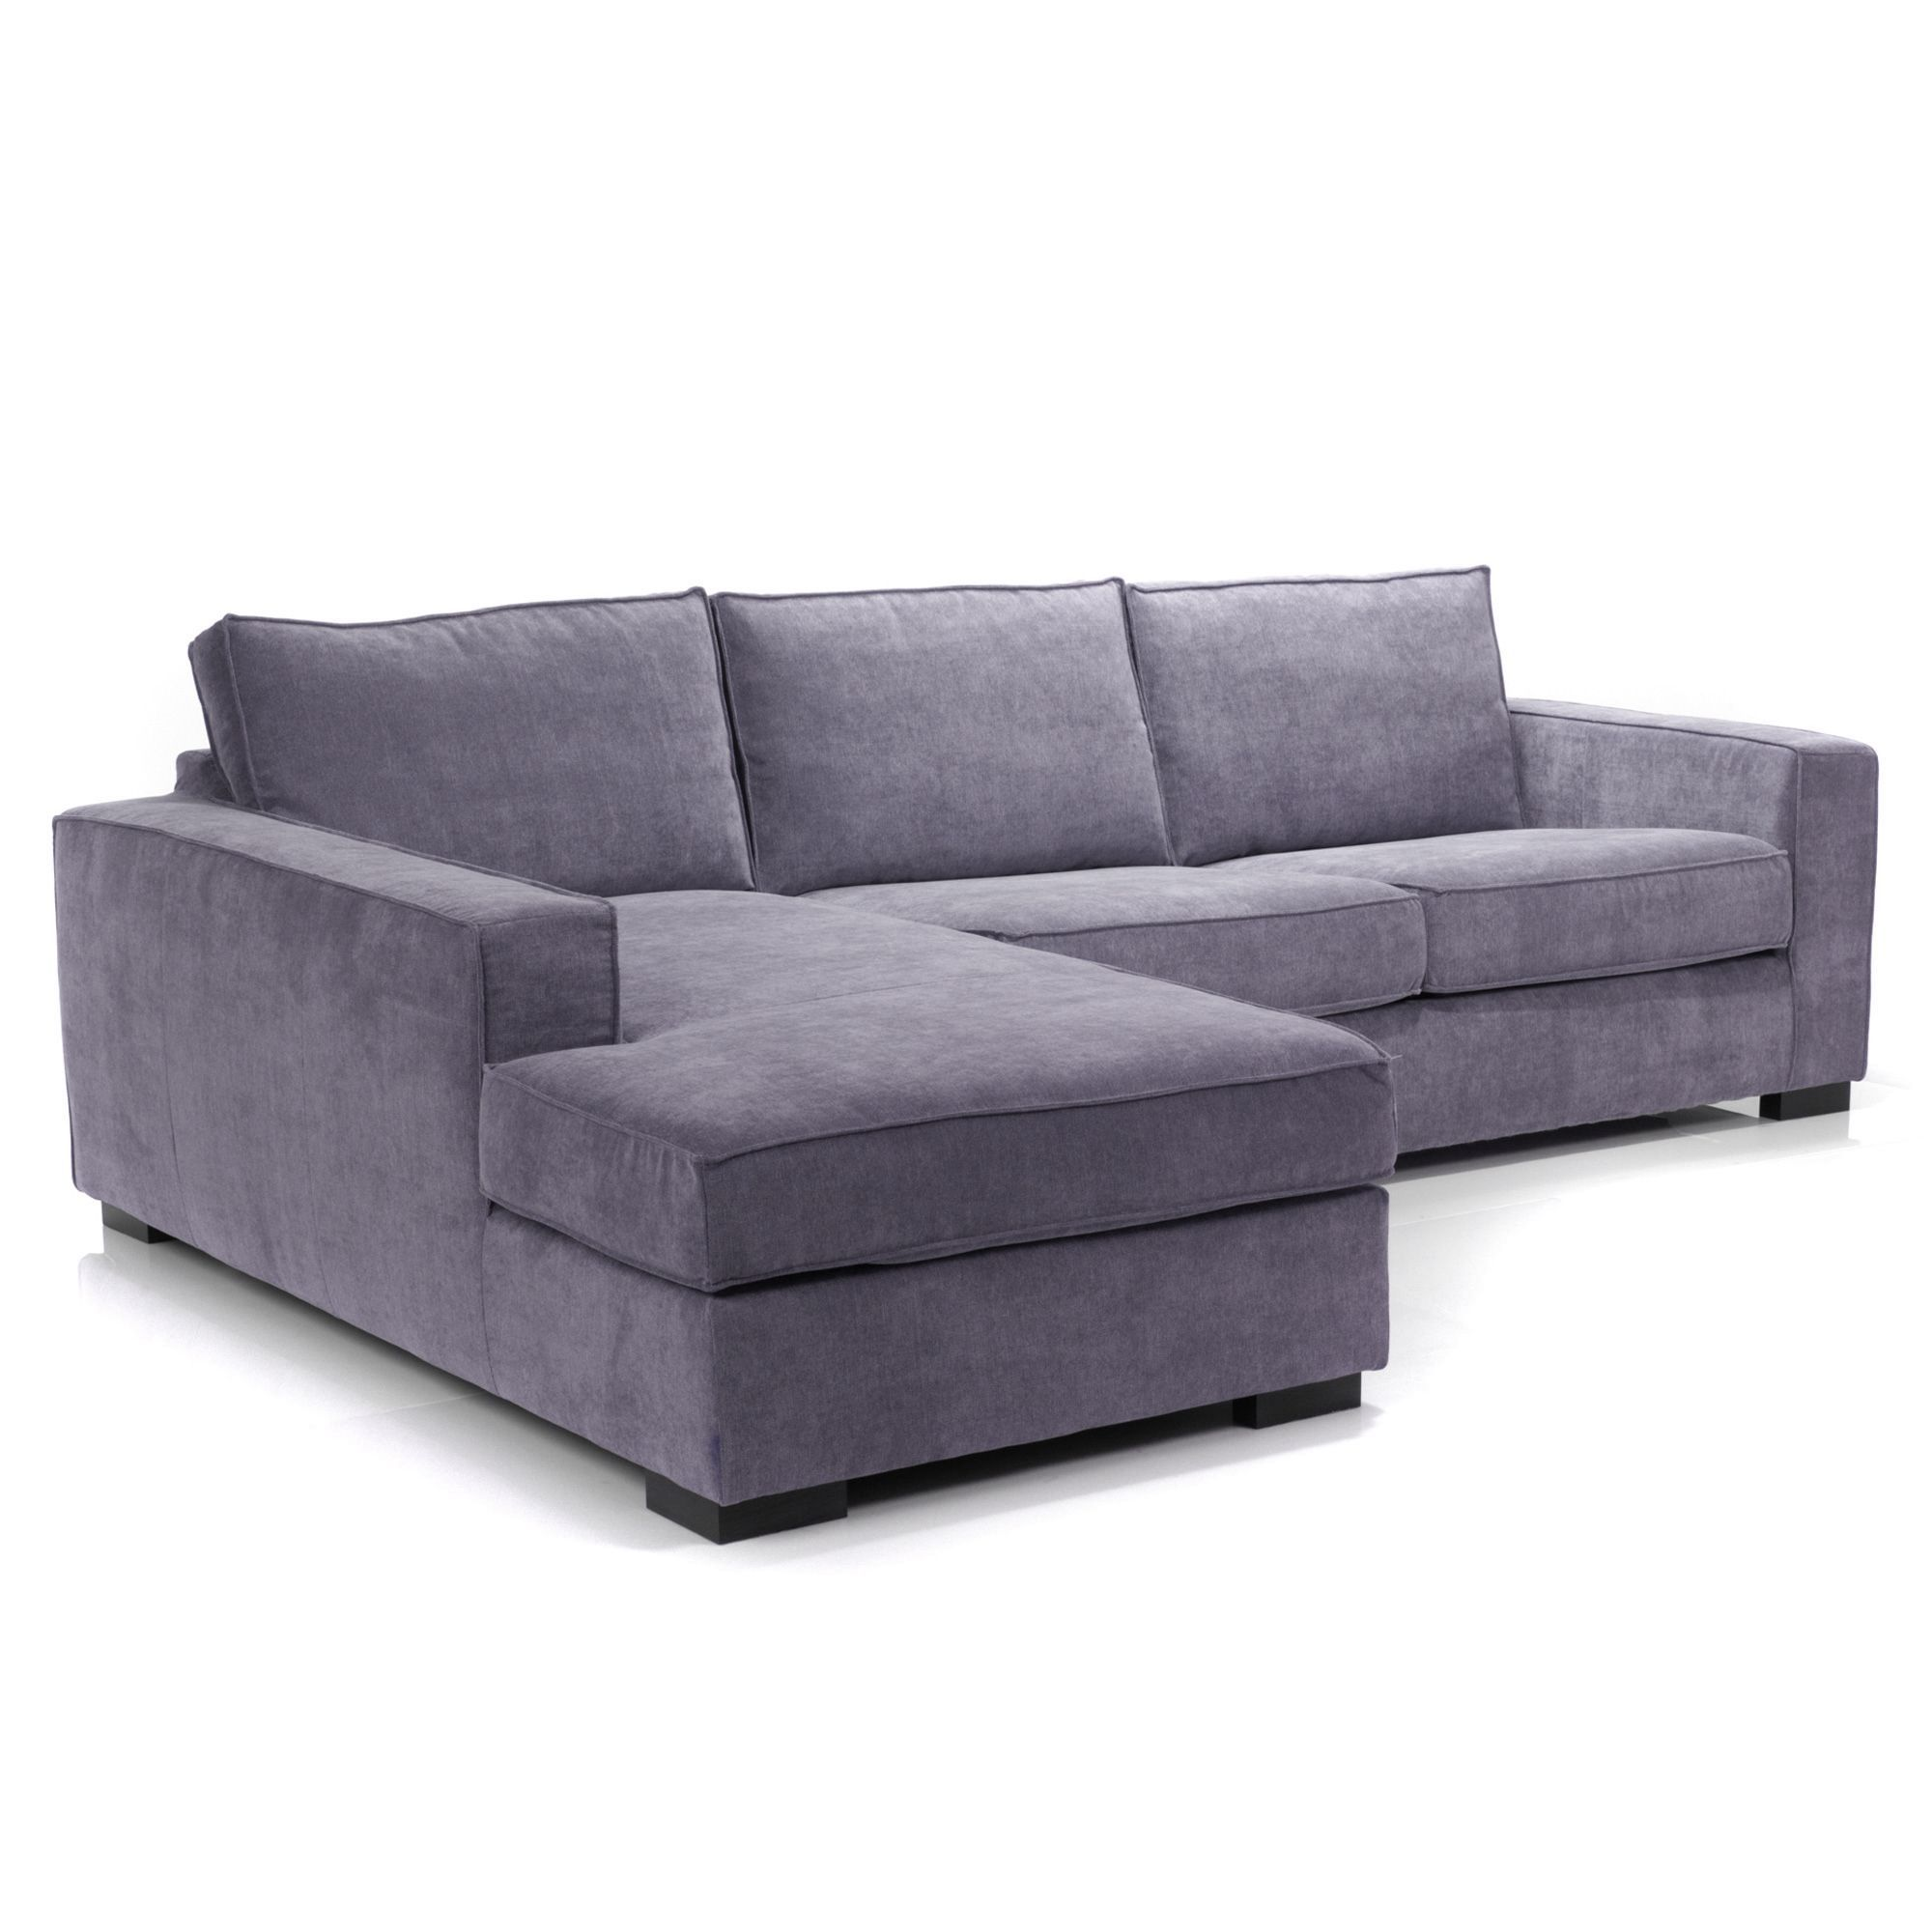 Canap d 39 angle gauche convertible mauve california les for Alinea canape california